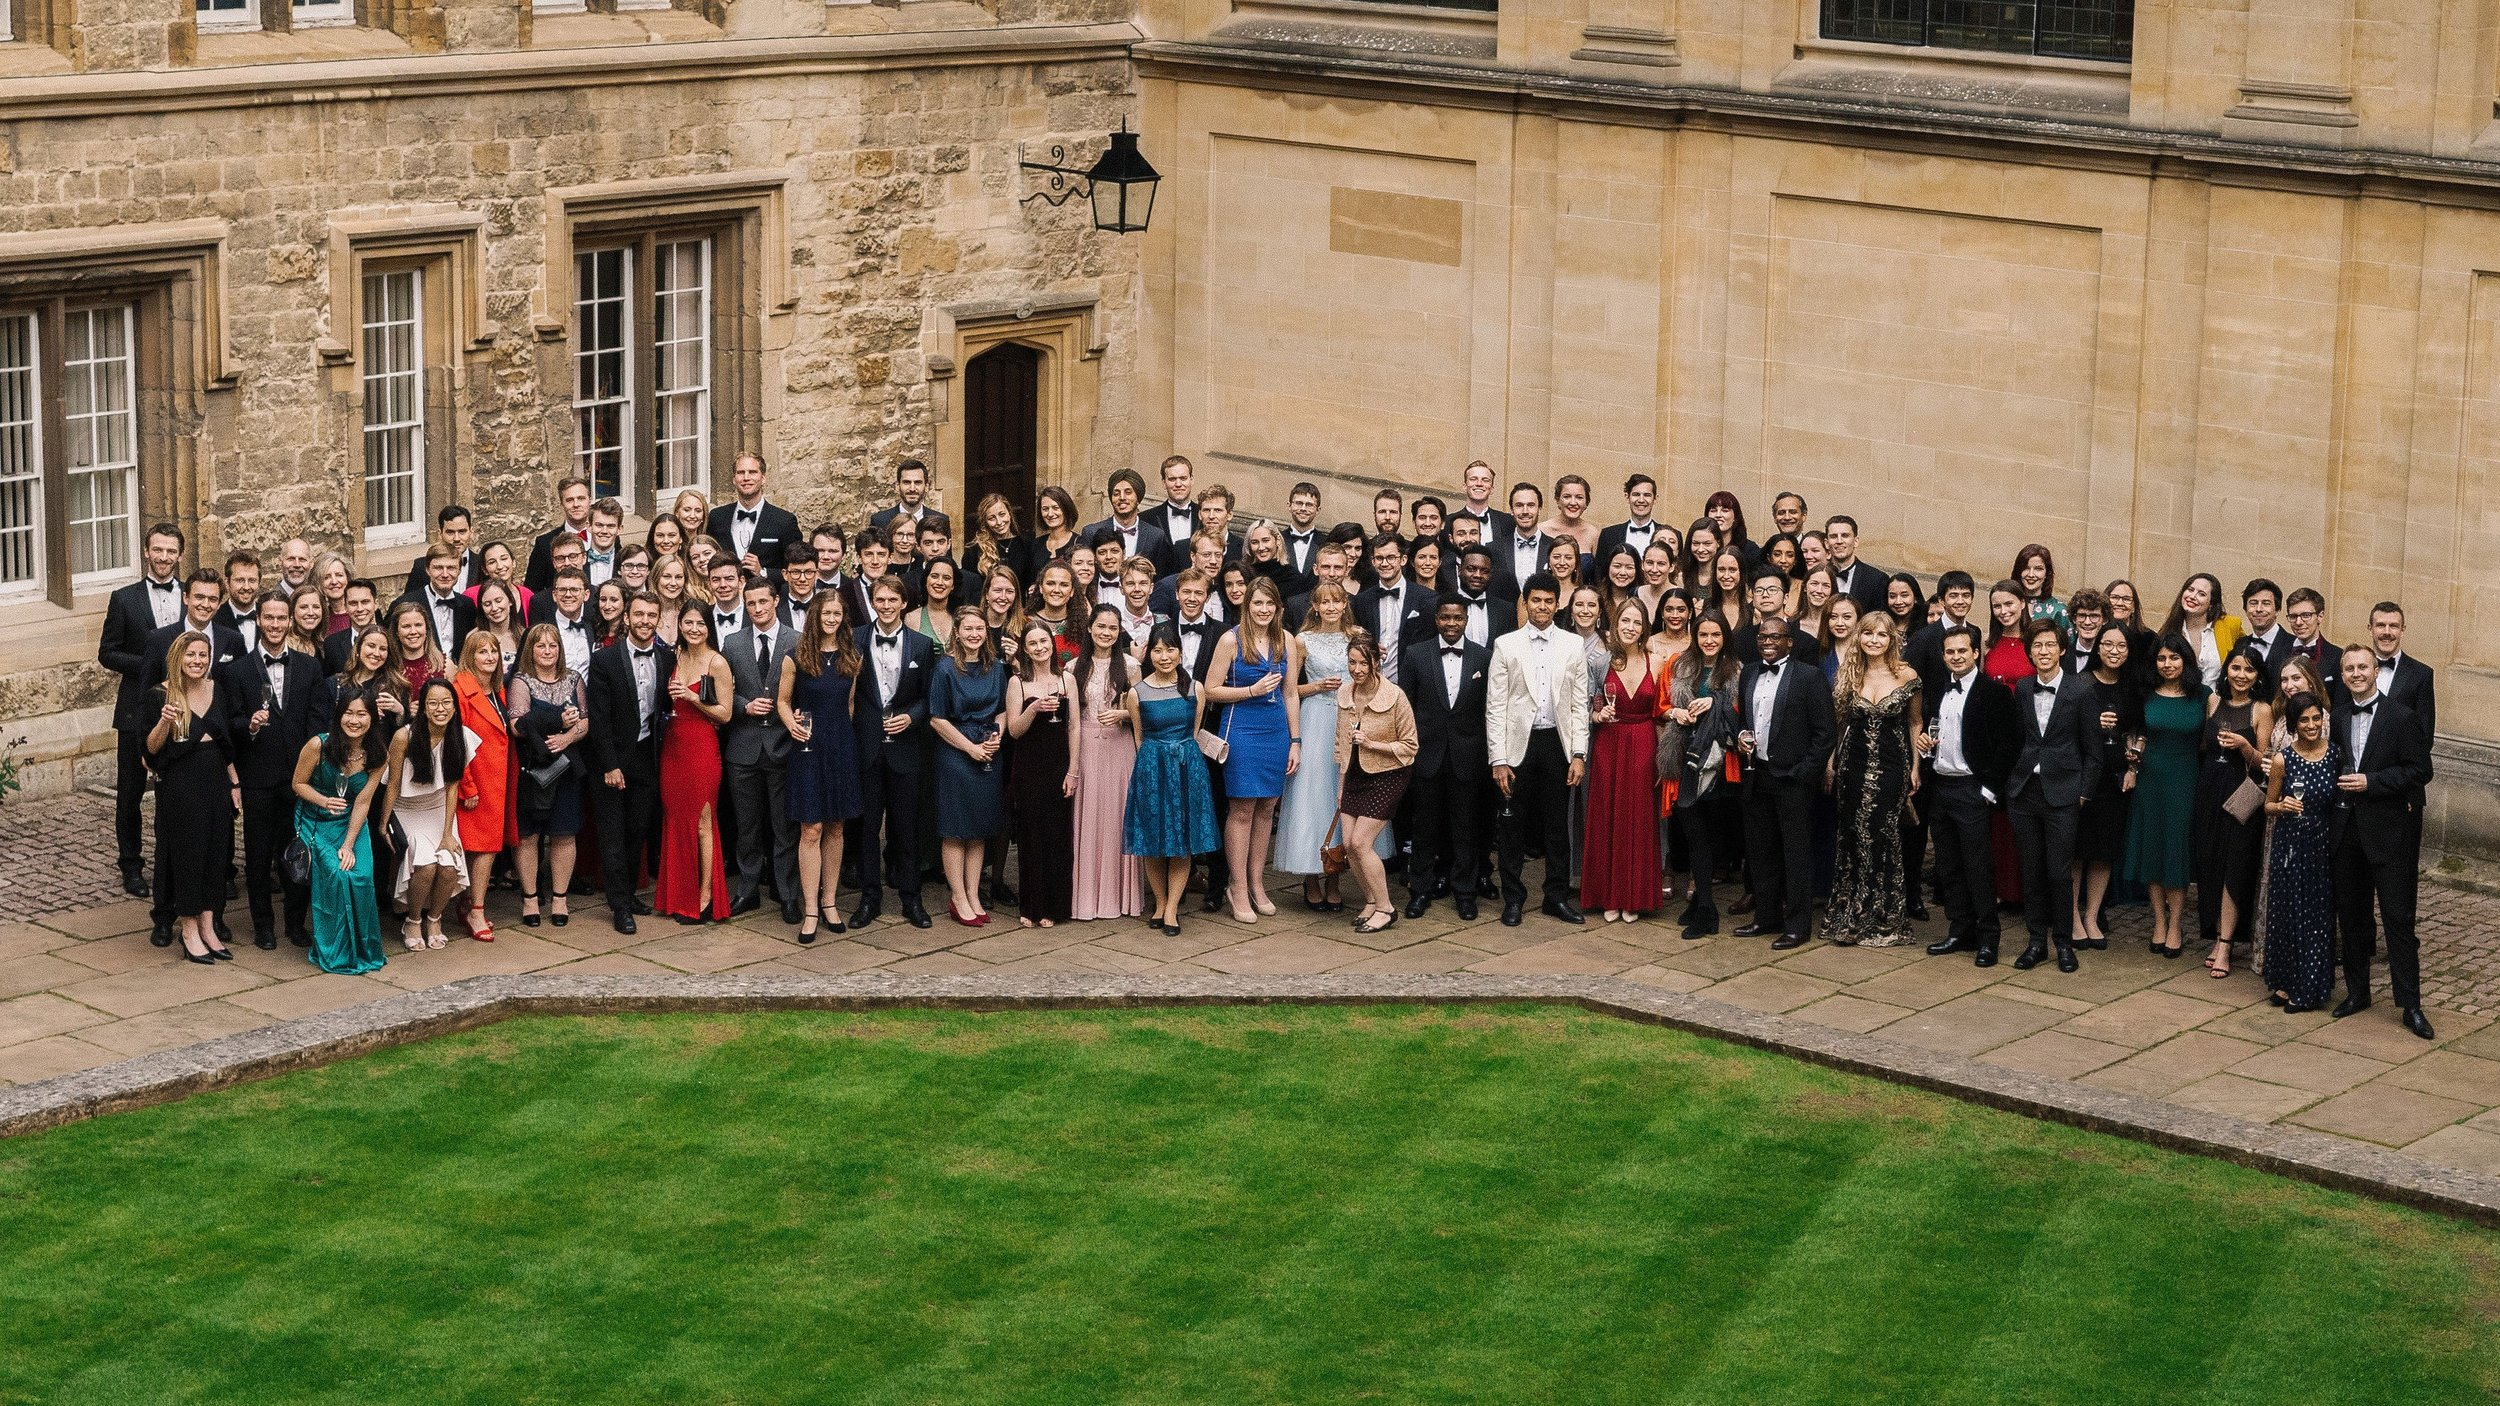 Attendees of the 2019 MCR Charity Gala Dinner pose during the drinks reception   Photographer: Izzy Romilly